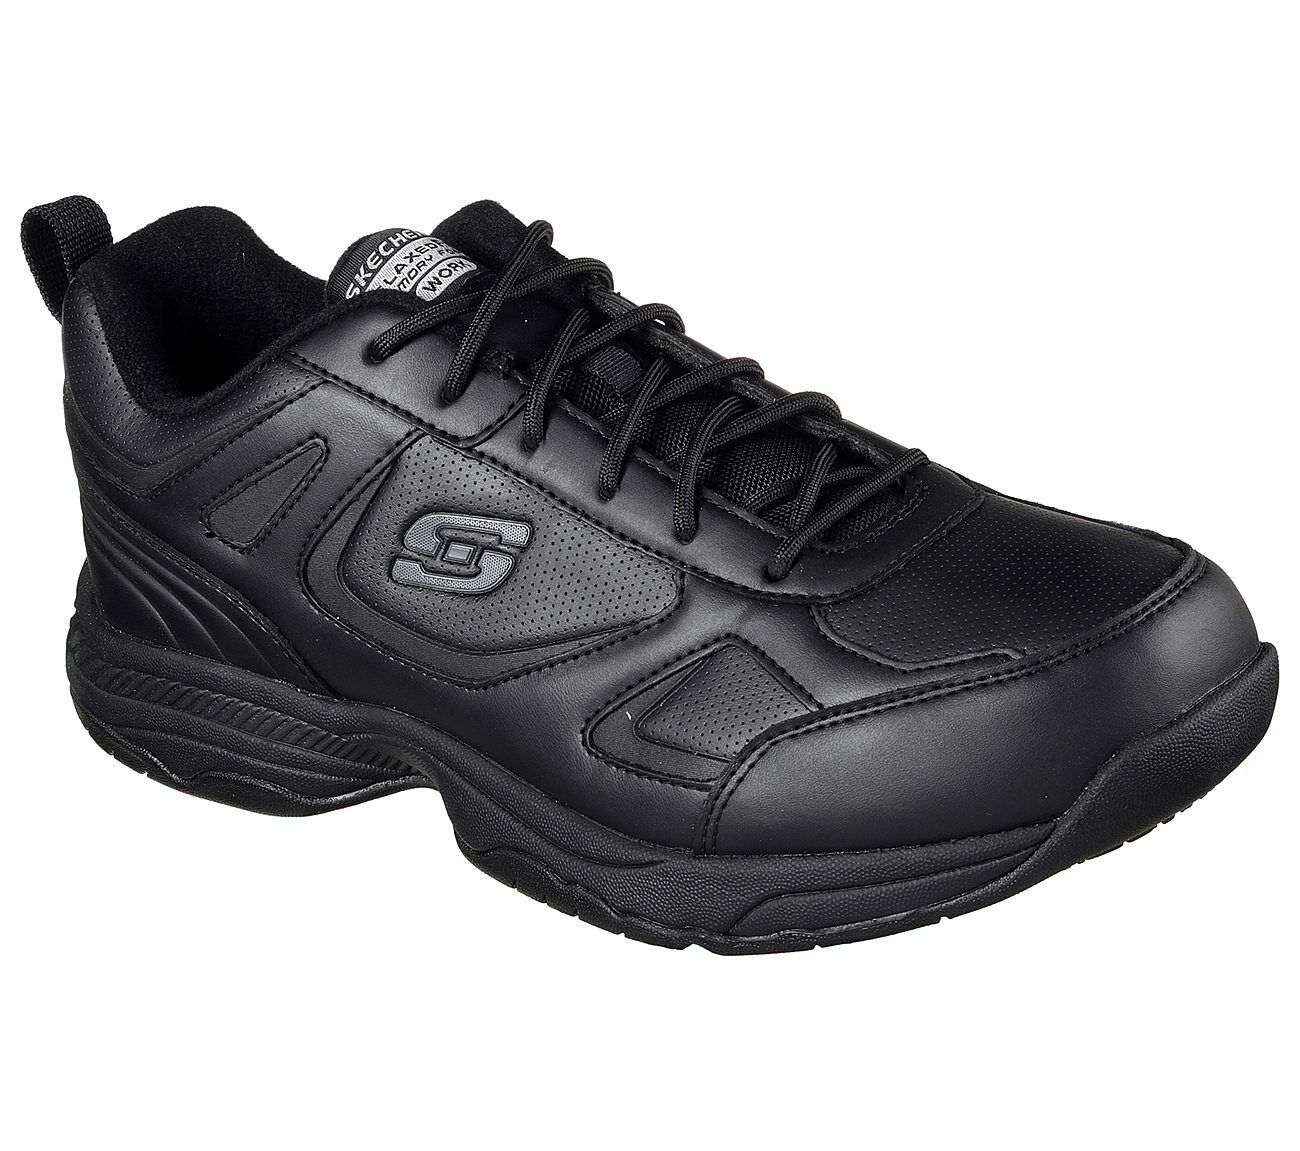 77111 Black Skechers shoes Memory Foam Work Men Comfort Slip Resistant EH Safety